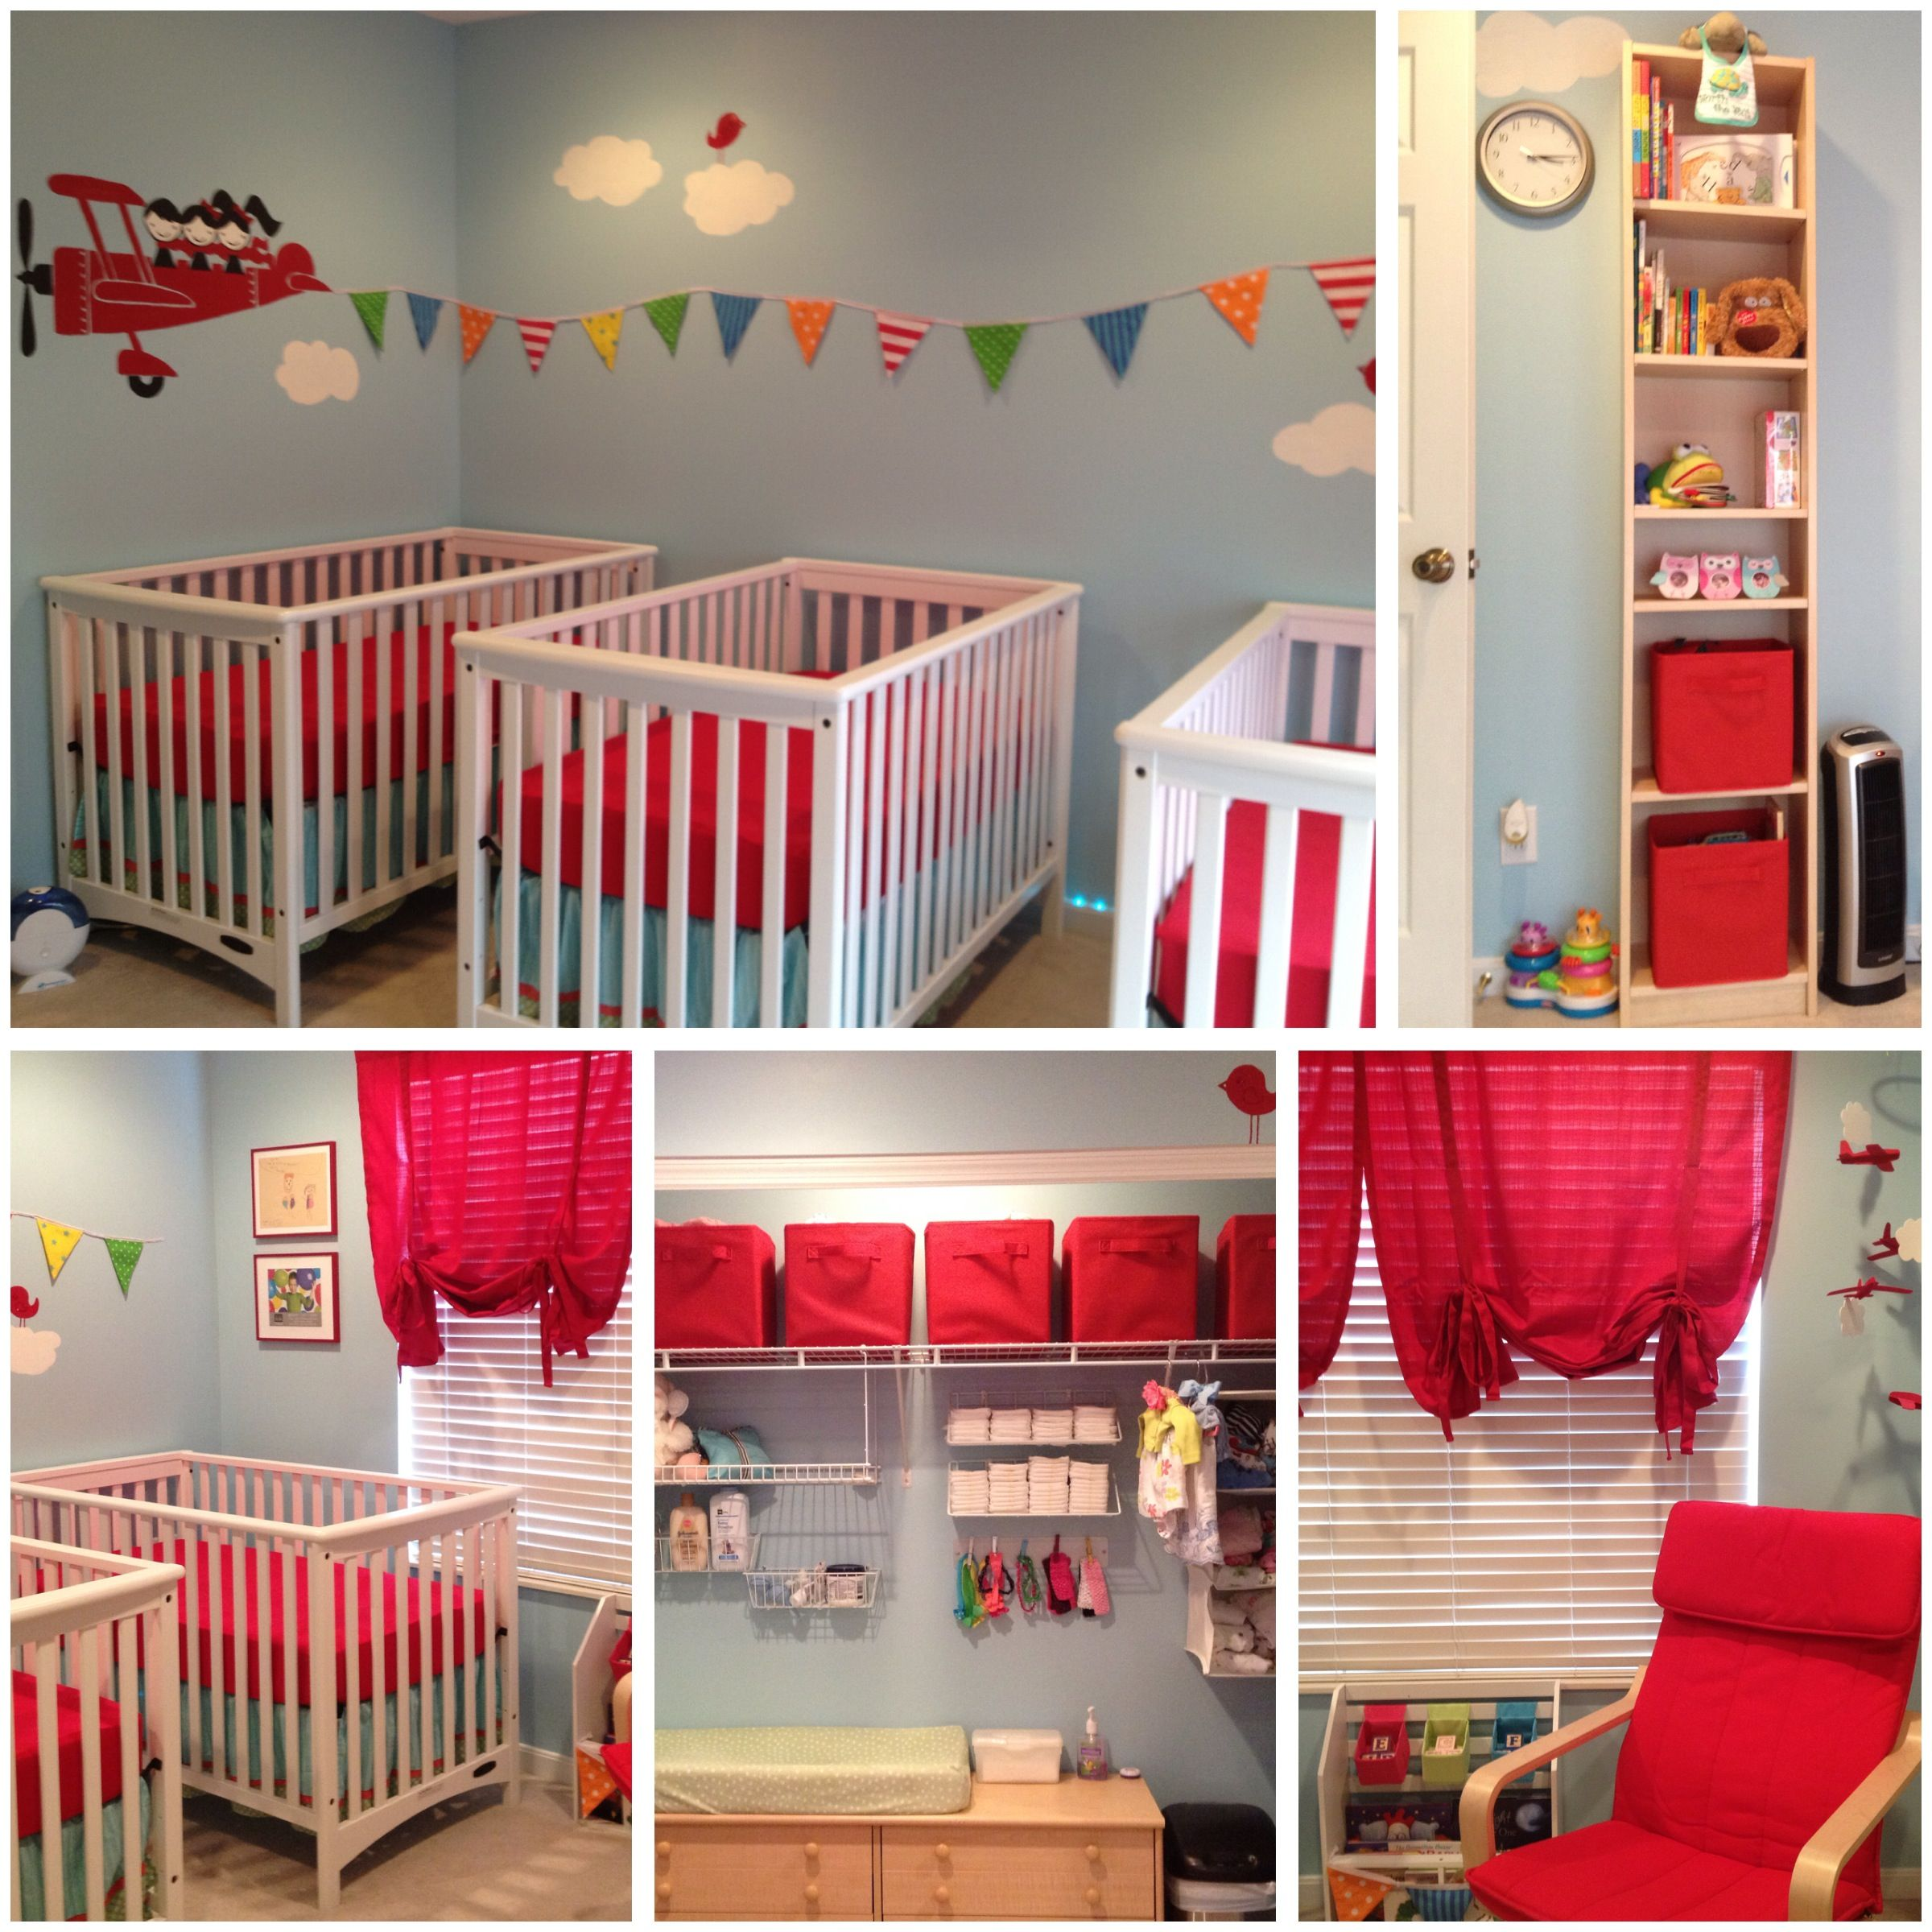 Crib for triplet babies - Triplet Airplane Theme Nursery Love The Way They Have The Cribs